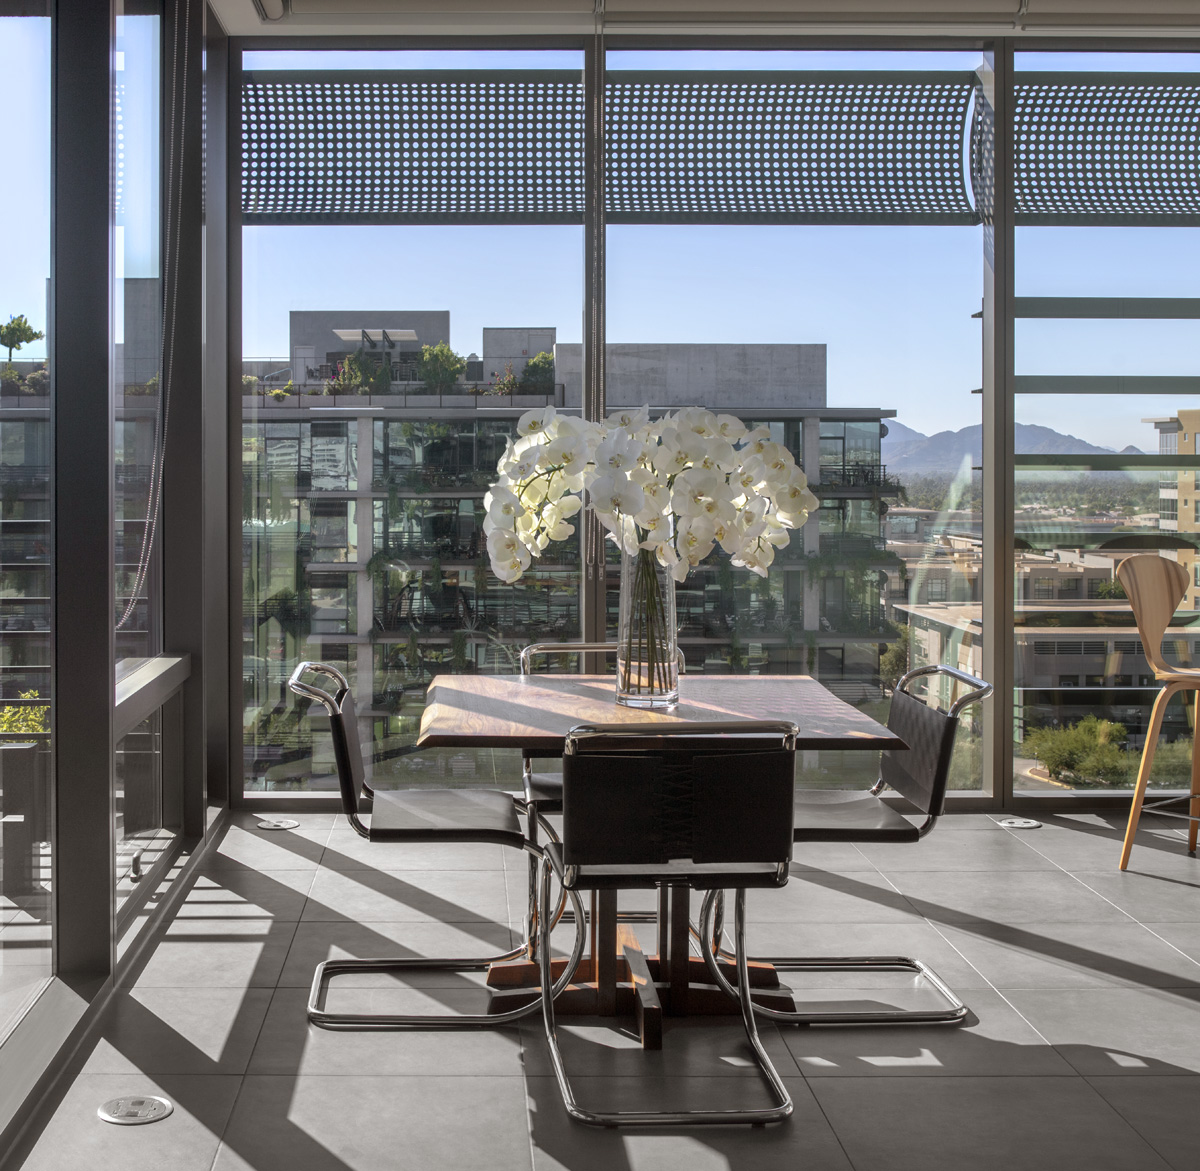 Barcelona Chairs at 7120 Optima Kierland with mountain views